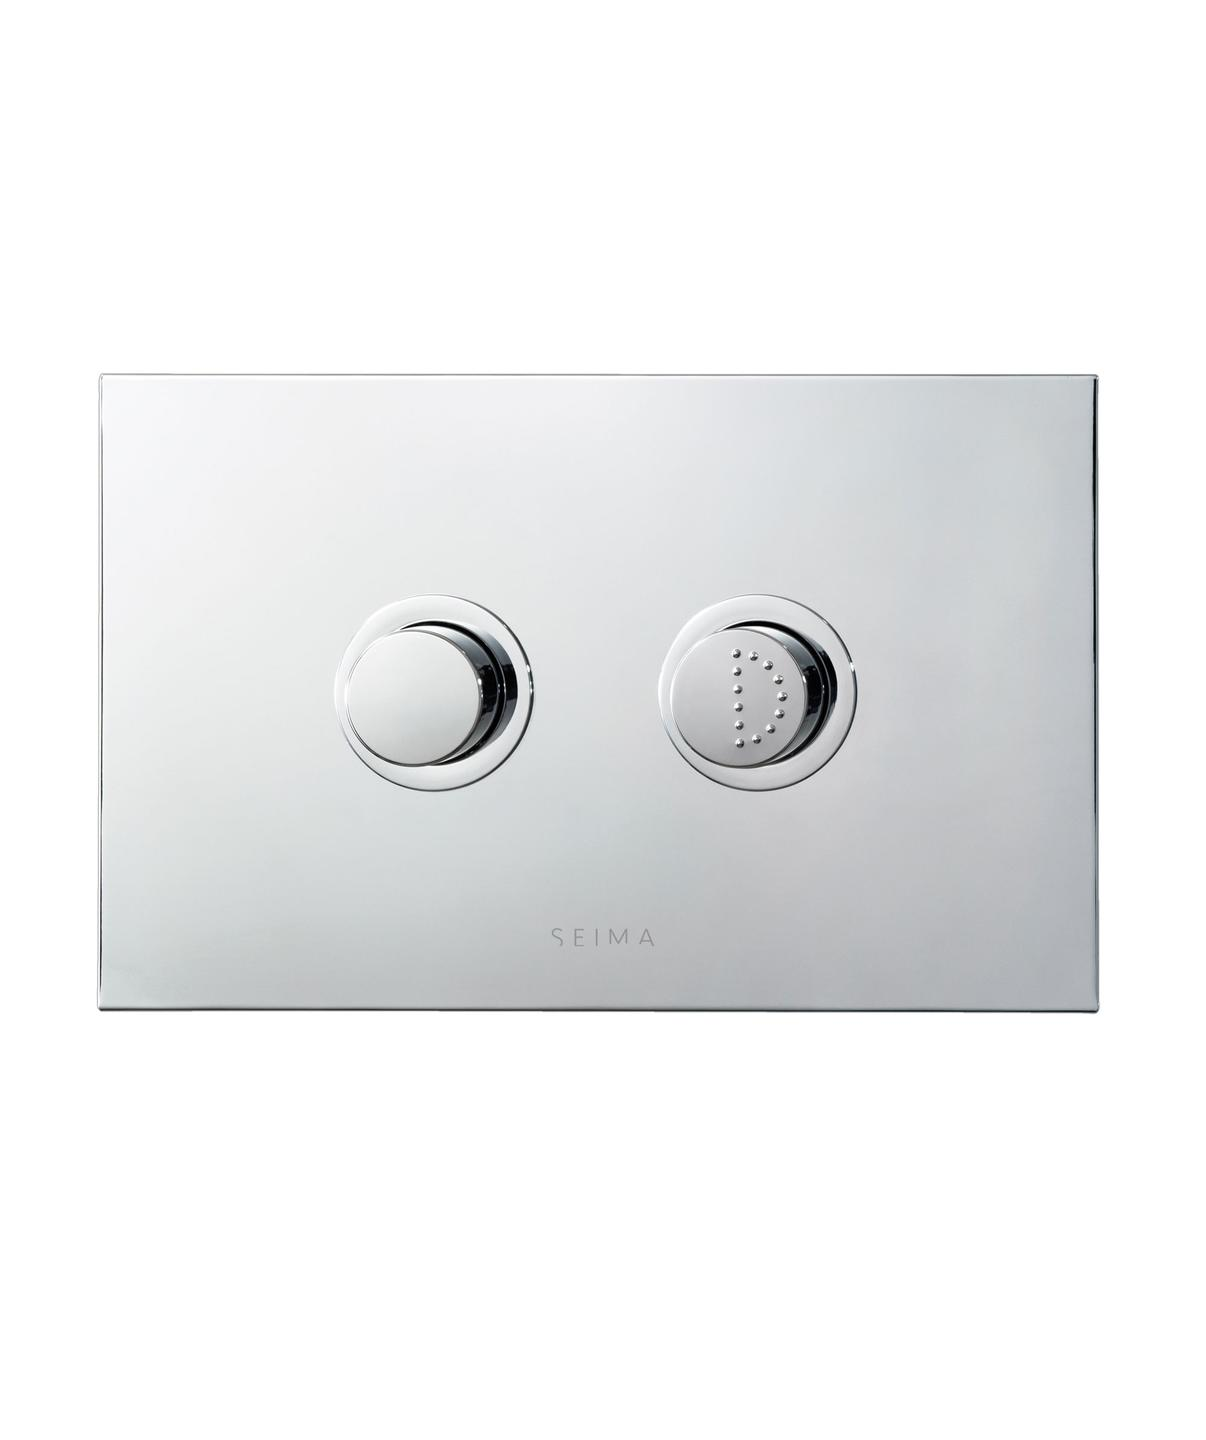 SEIMA INWALL FLUSH PLATE RAISED BUTTONS